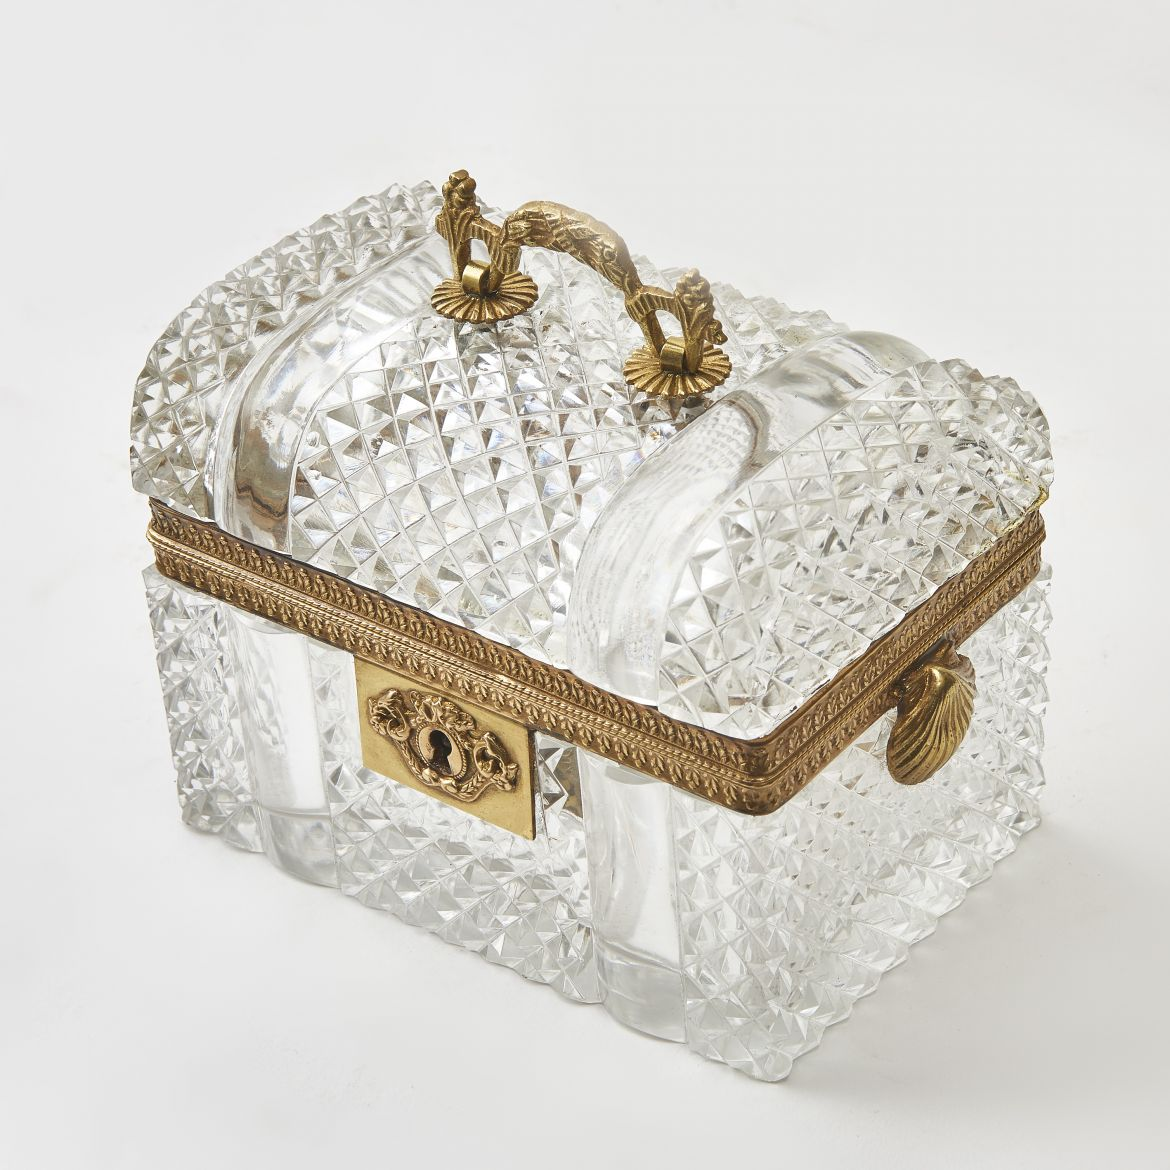 French Domed top Louis Philippe Glass Box